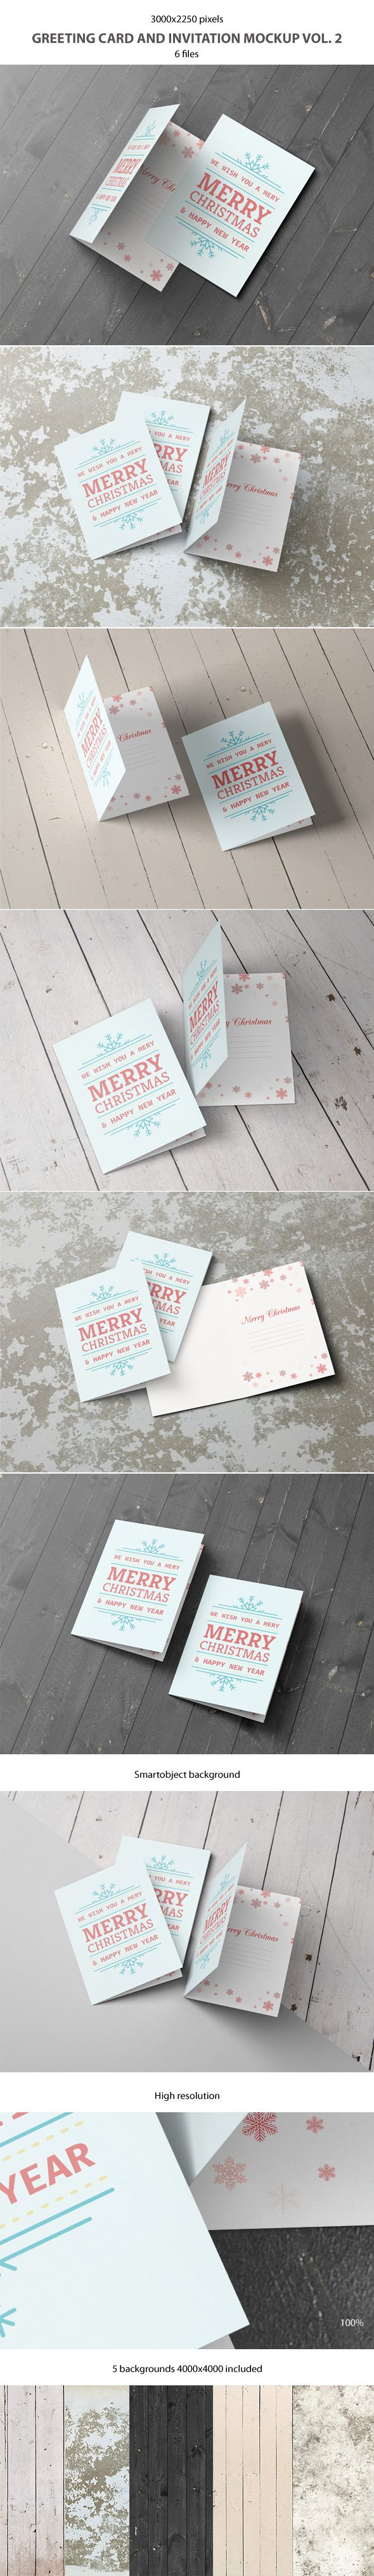 24 best Christmas card project images on Pinterest